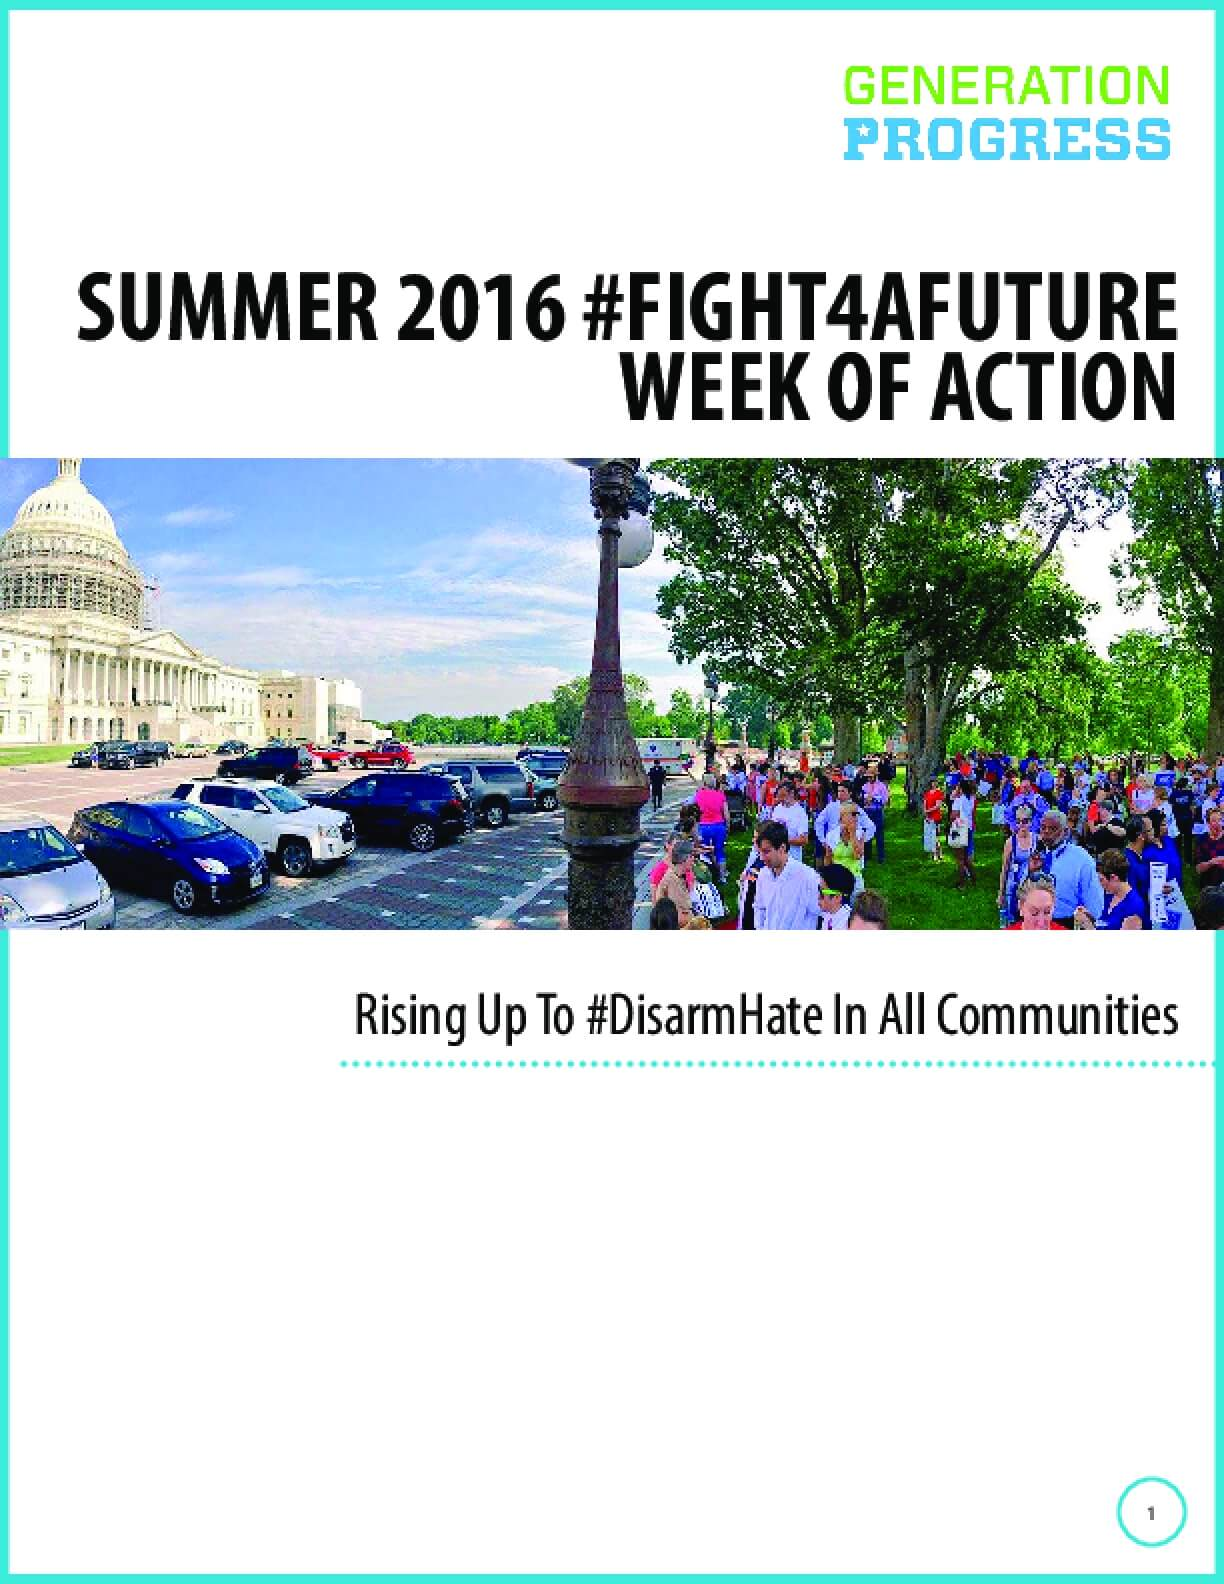 Summer 2016 #FIGHT4AFUTURE Week of Action: Rising up to #DisarmHate in All Communities